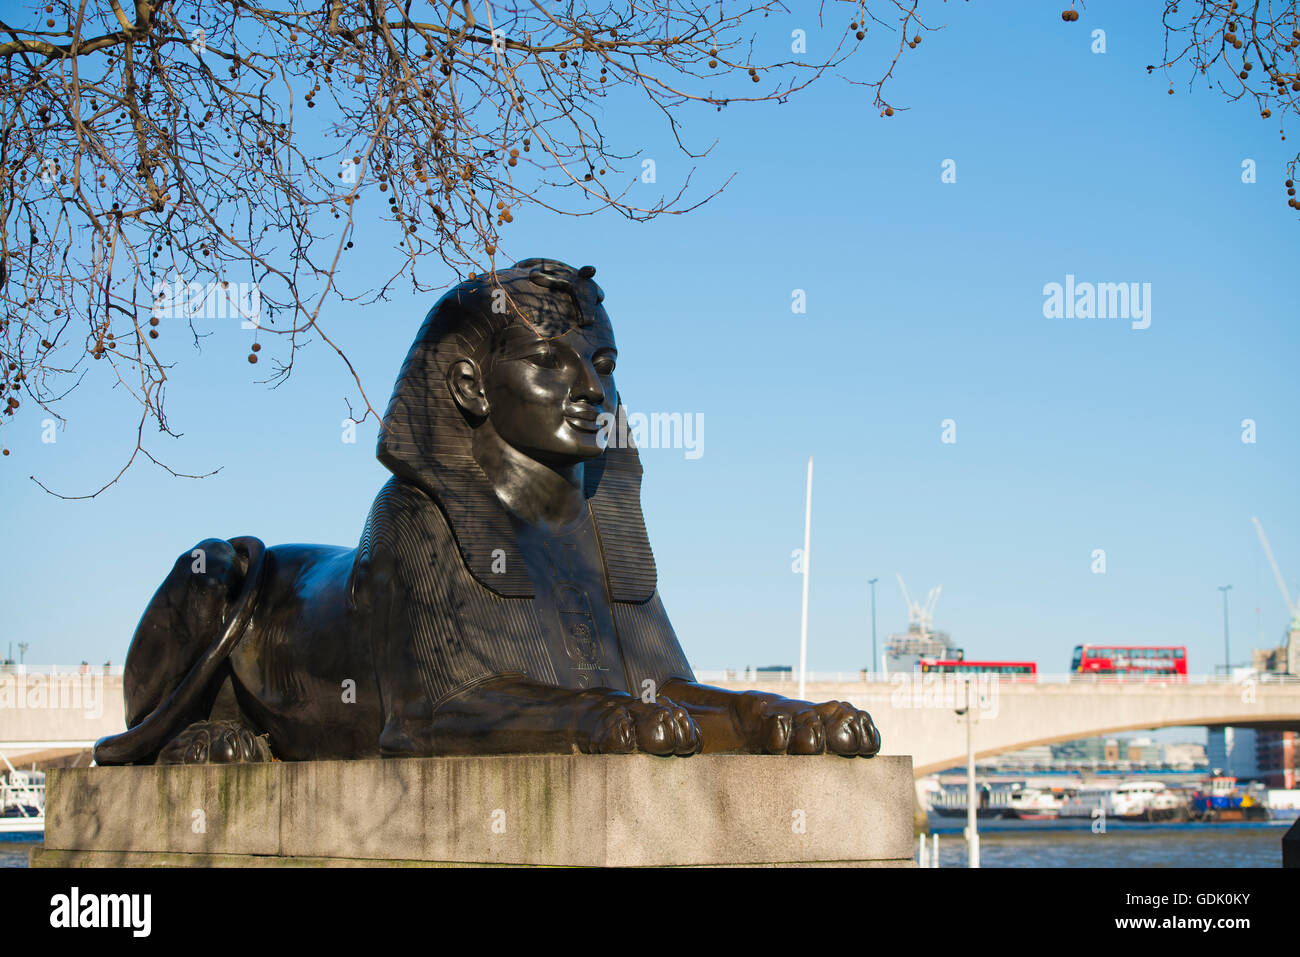 London, United Kingdom - April 02, 2013: Sphinx statue by the River Thames along the London Embankment - Stock Image